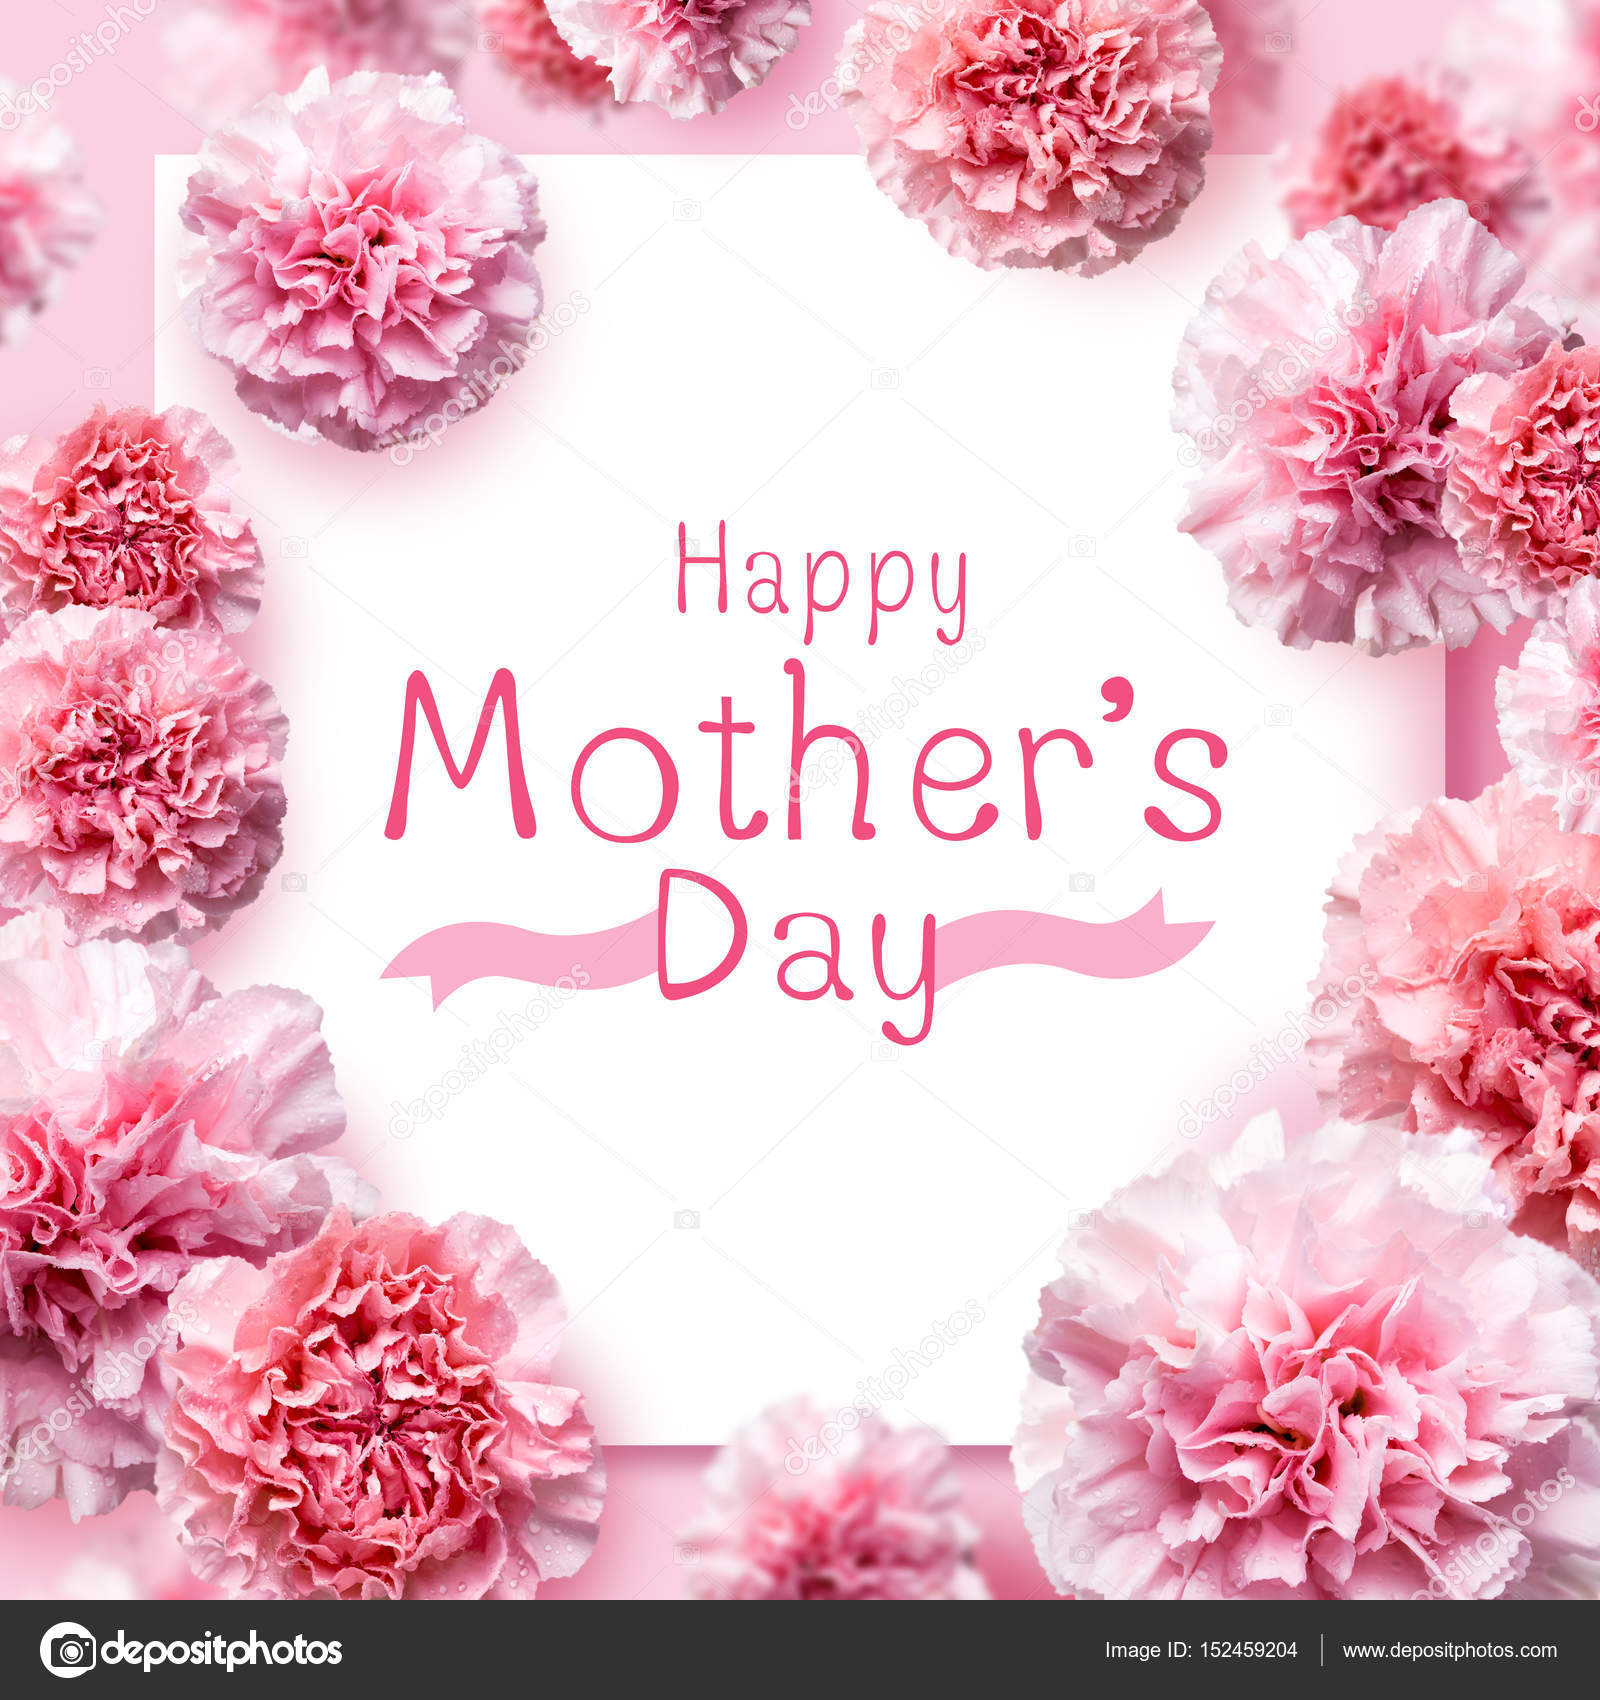 Happy Mothers Day Message On Pink Carnation Flowers Background